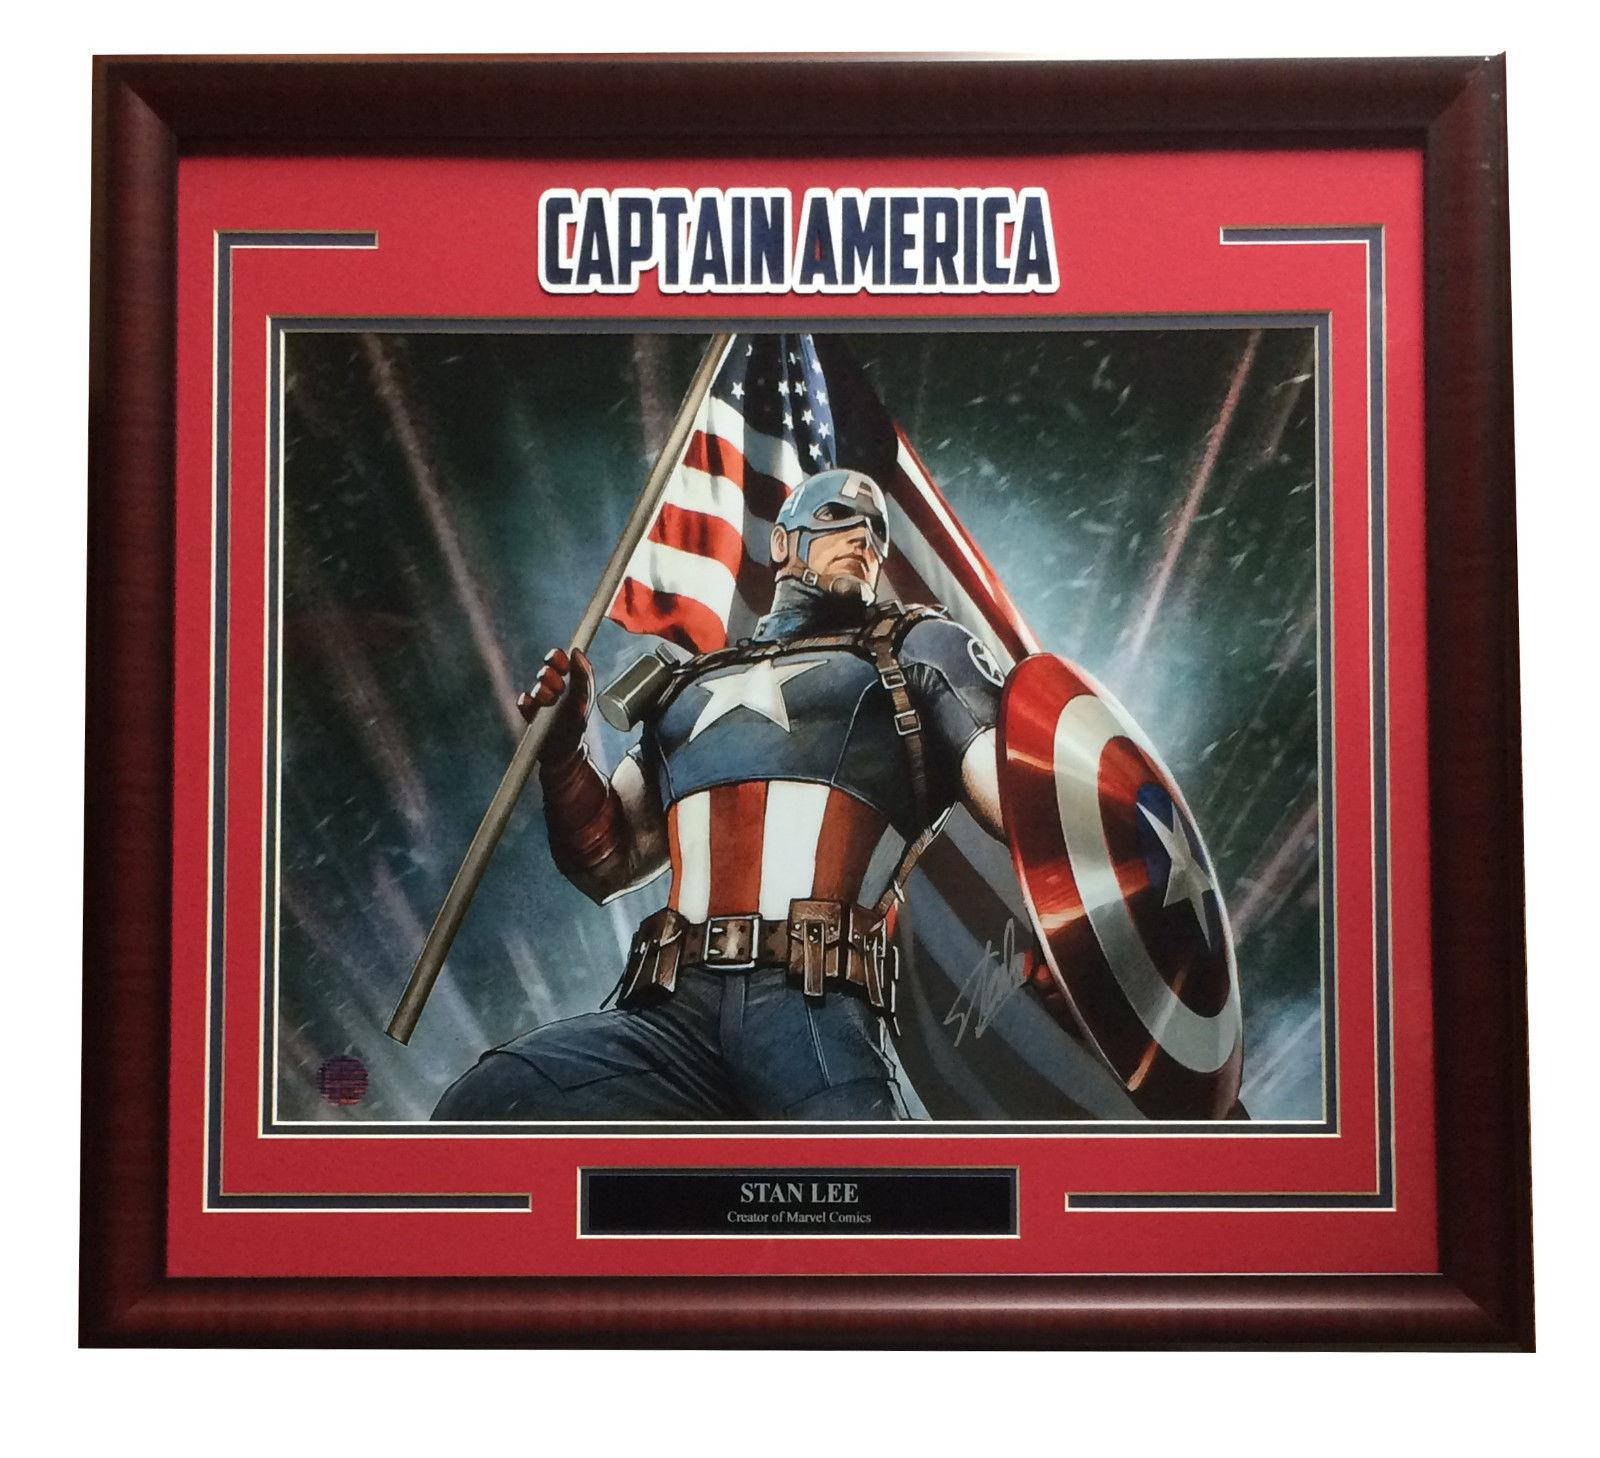 Stan Lee signed 16x20 Captain America Marvel photo framed mint auto holo coa